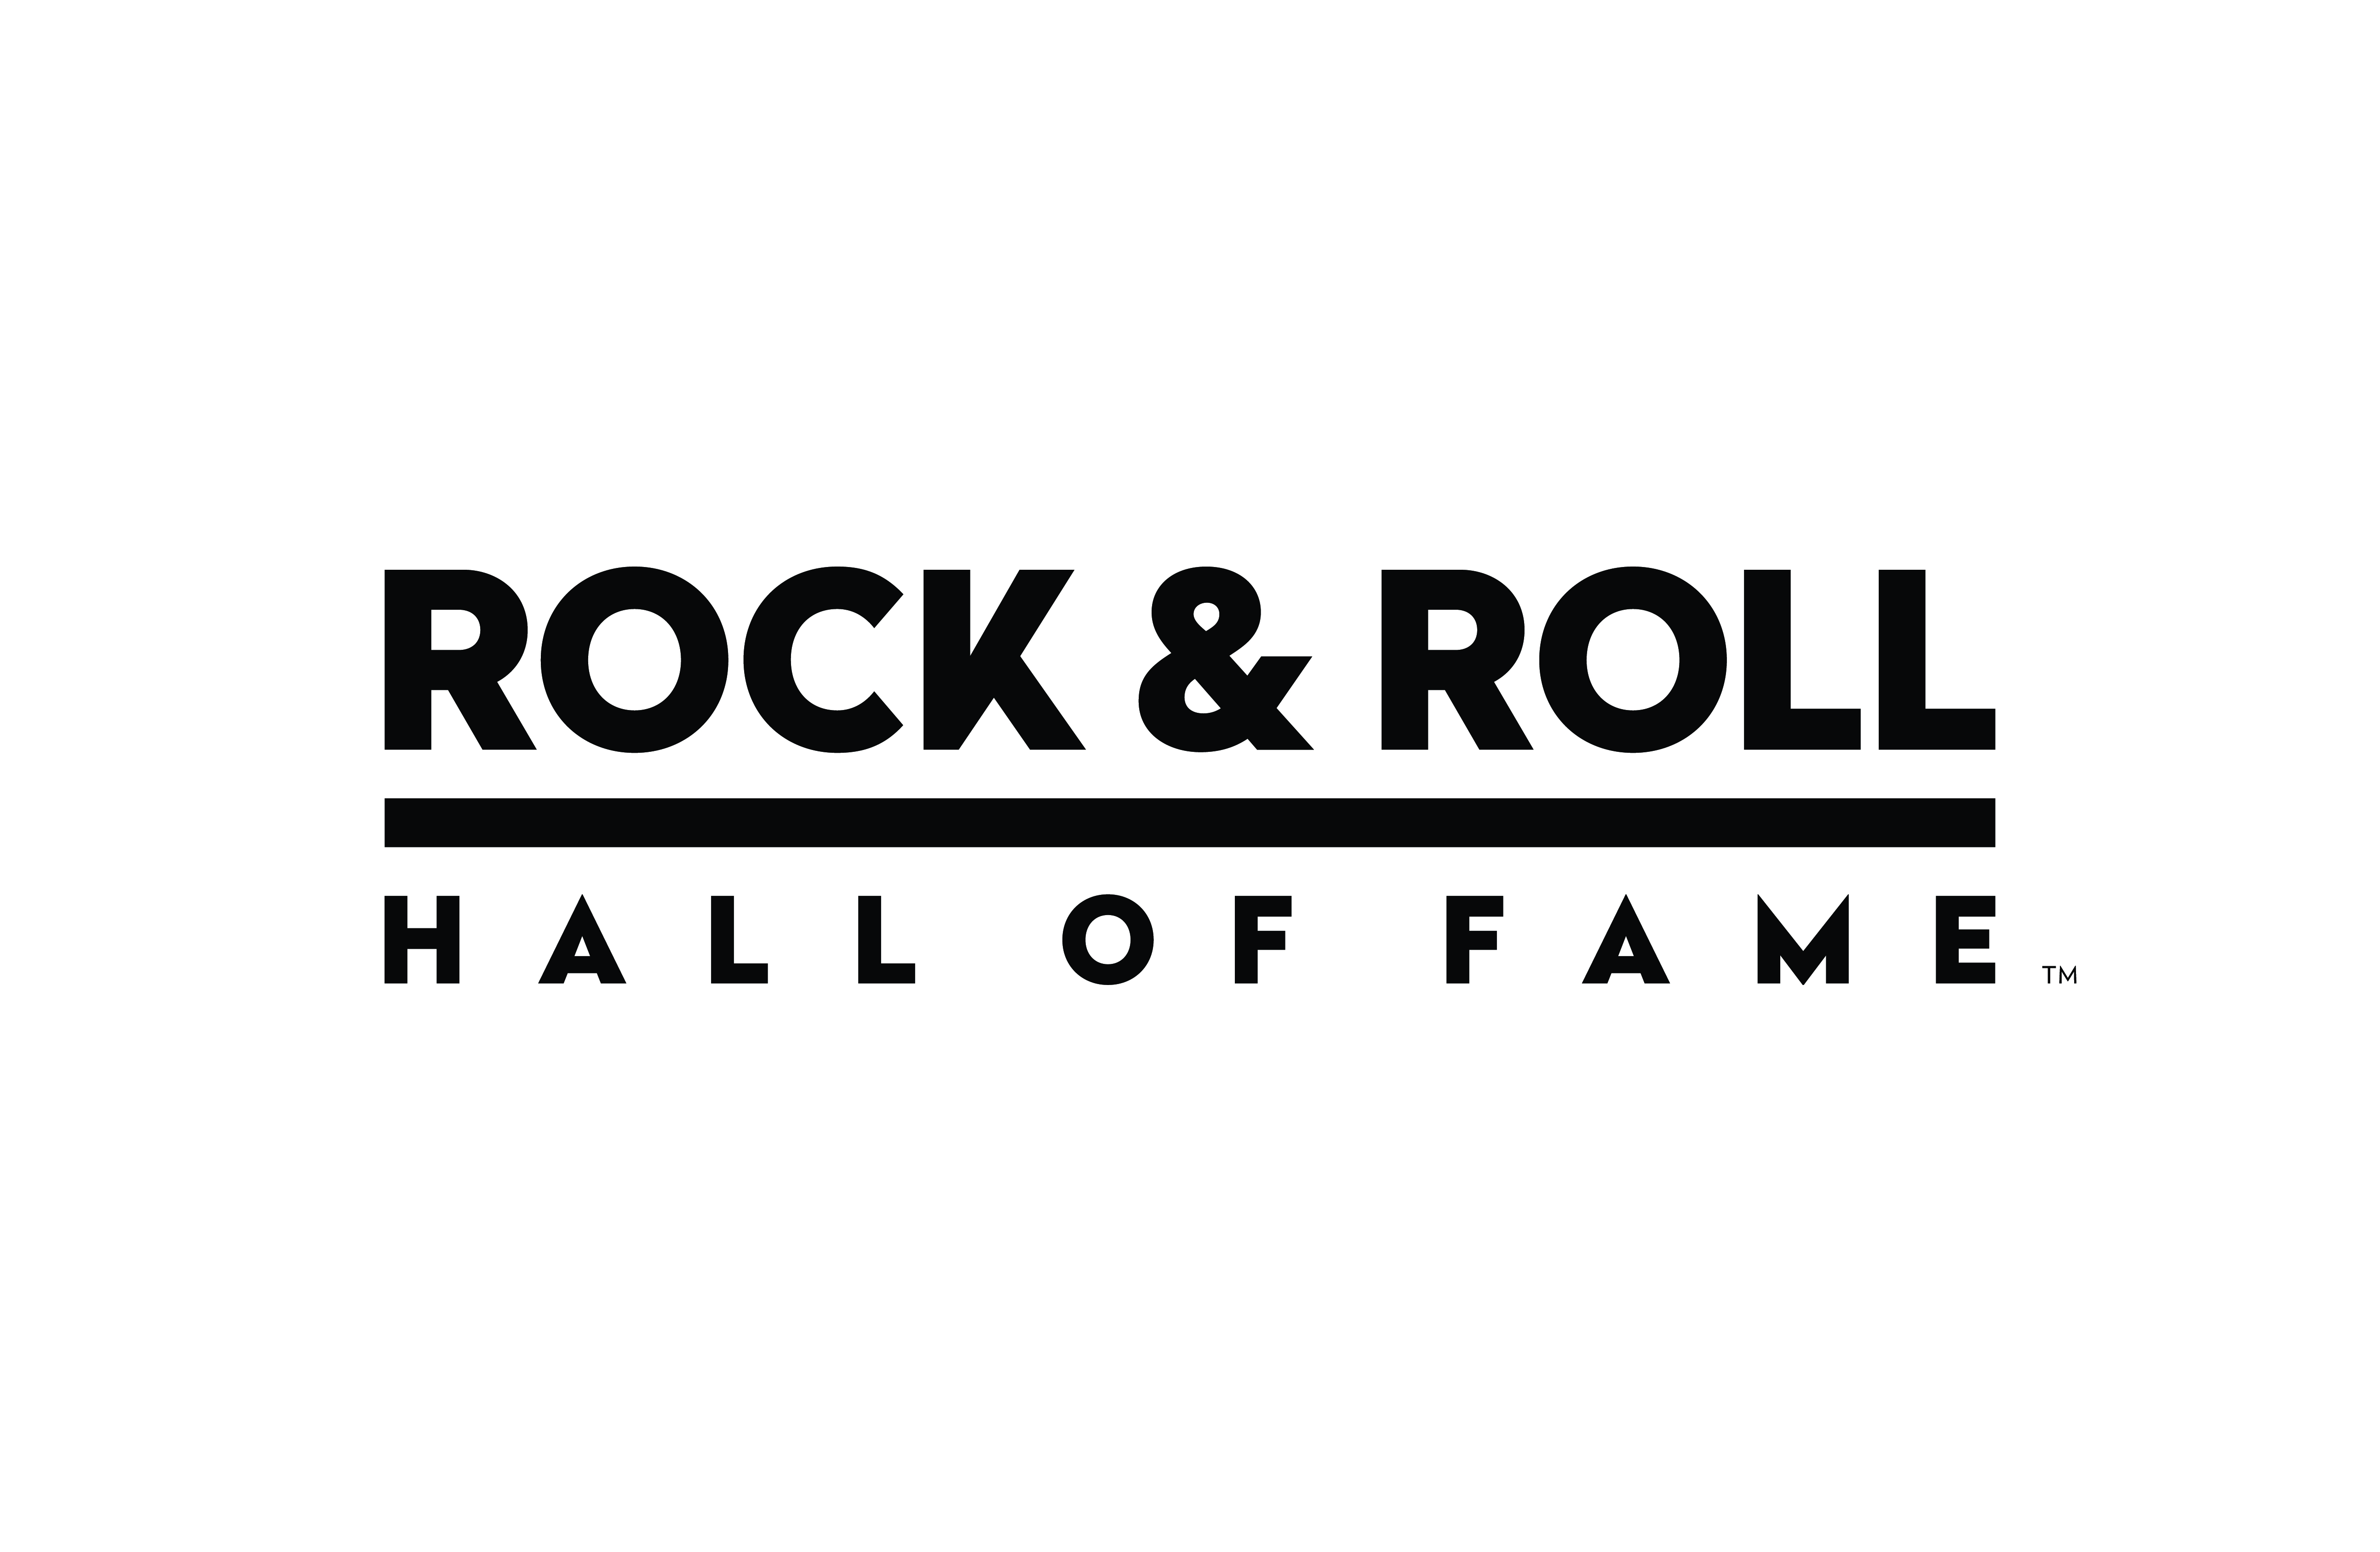 The Rock&Roll